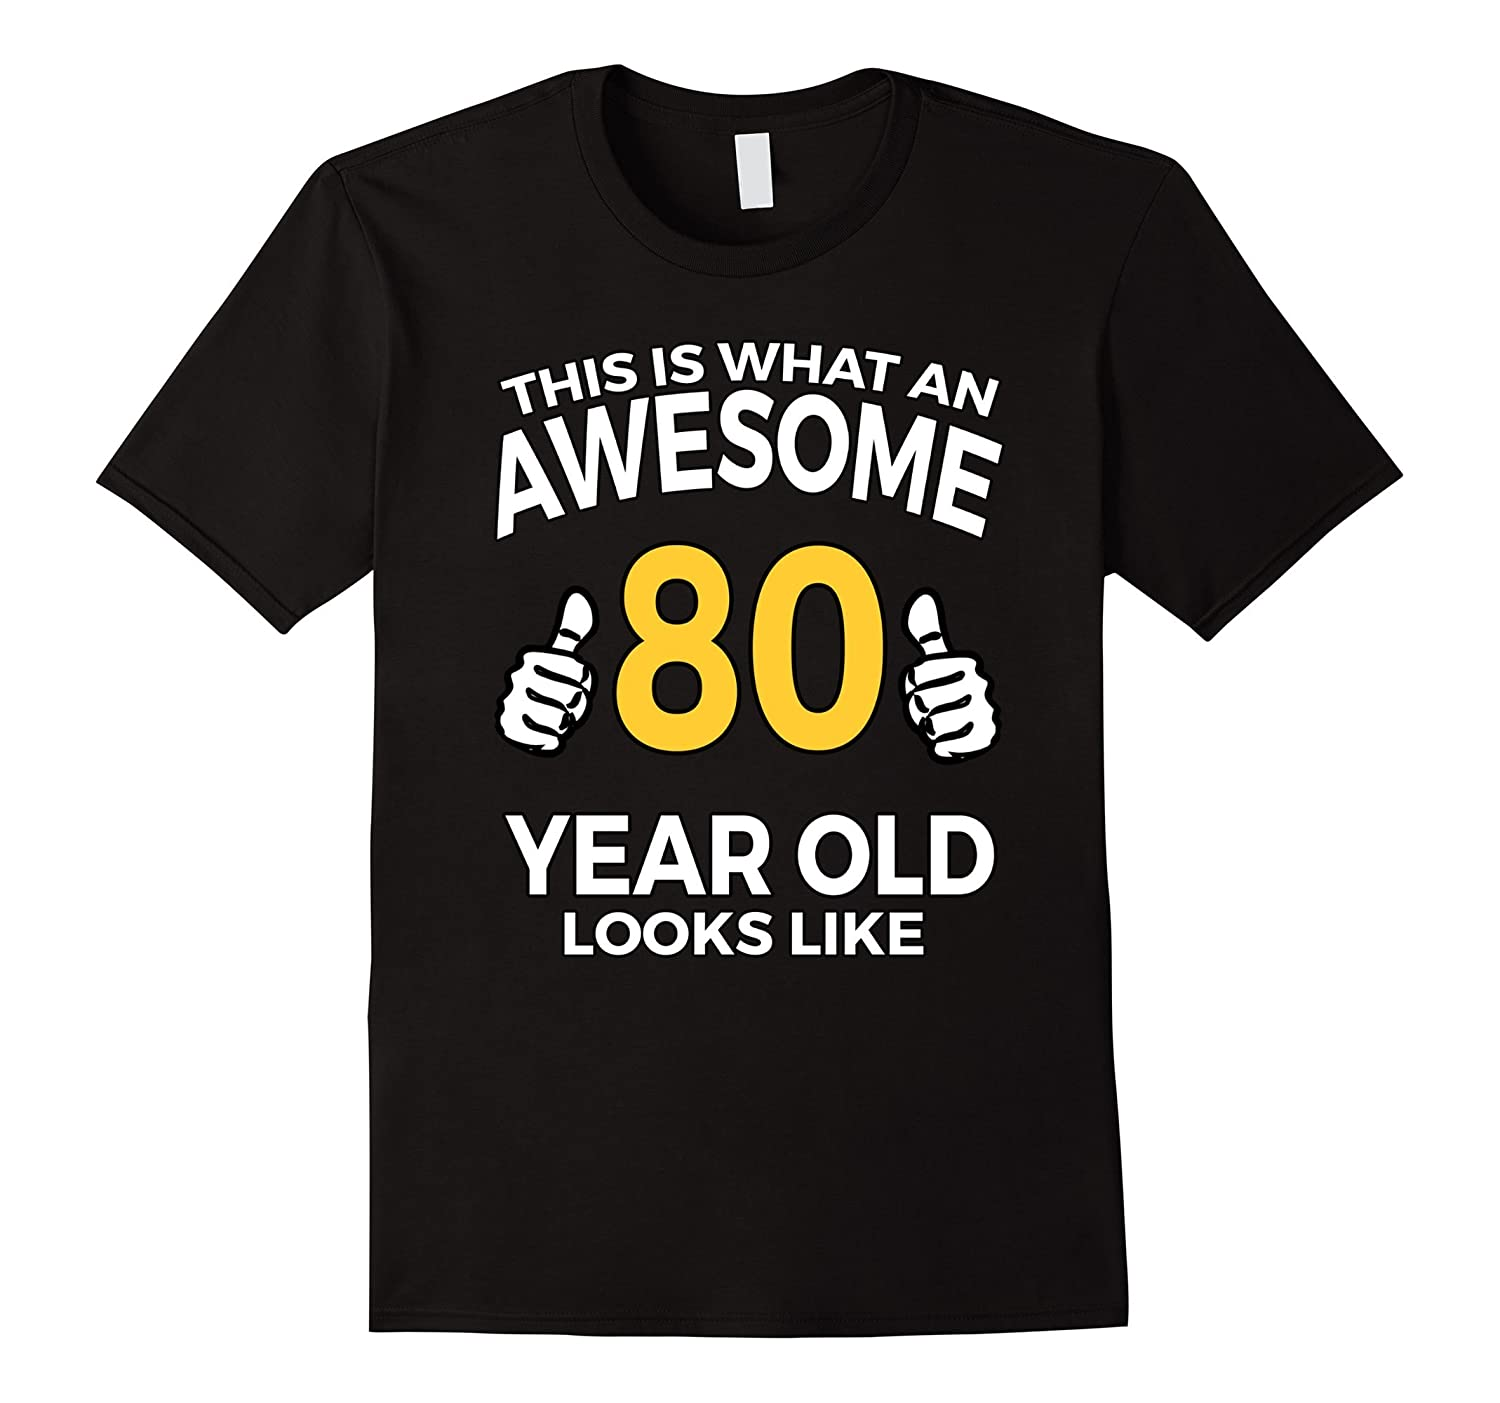 80 Year Old Birthday Gifts T Shirt For A Senior Man Or Woman